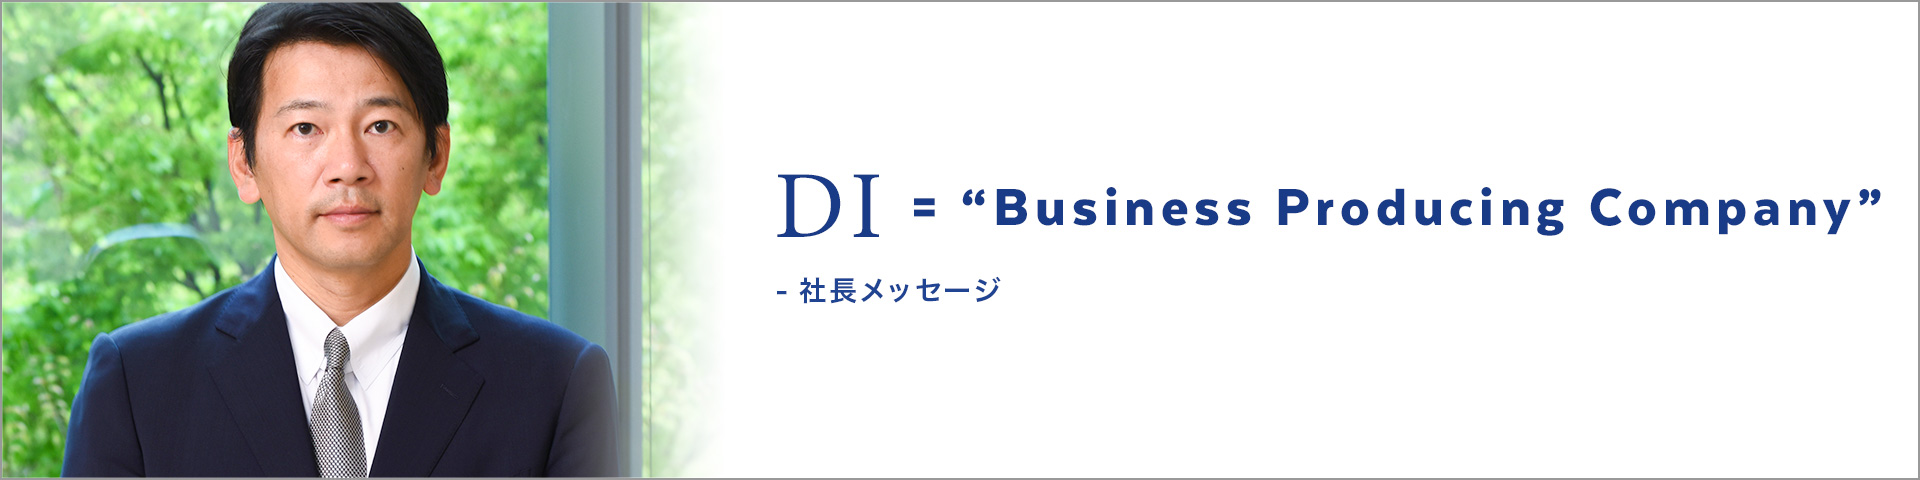 Business Producing Company - 社長メッセージ